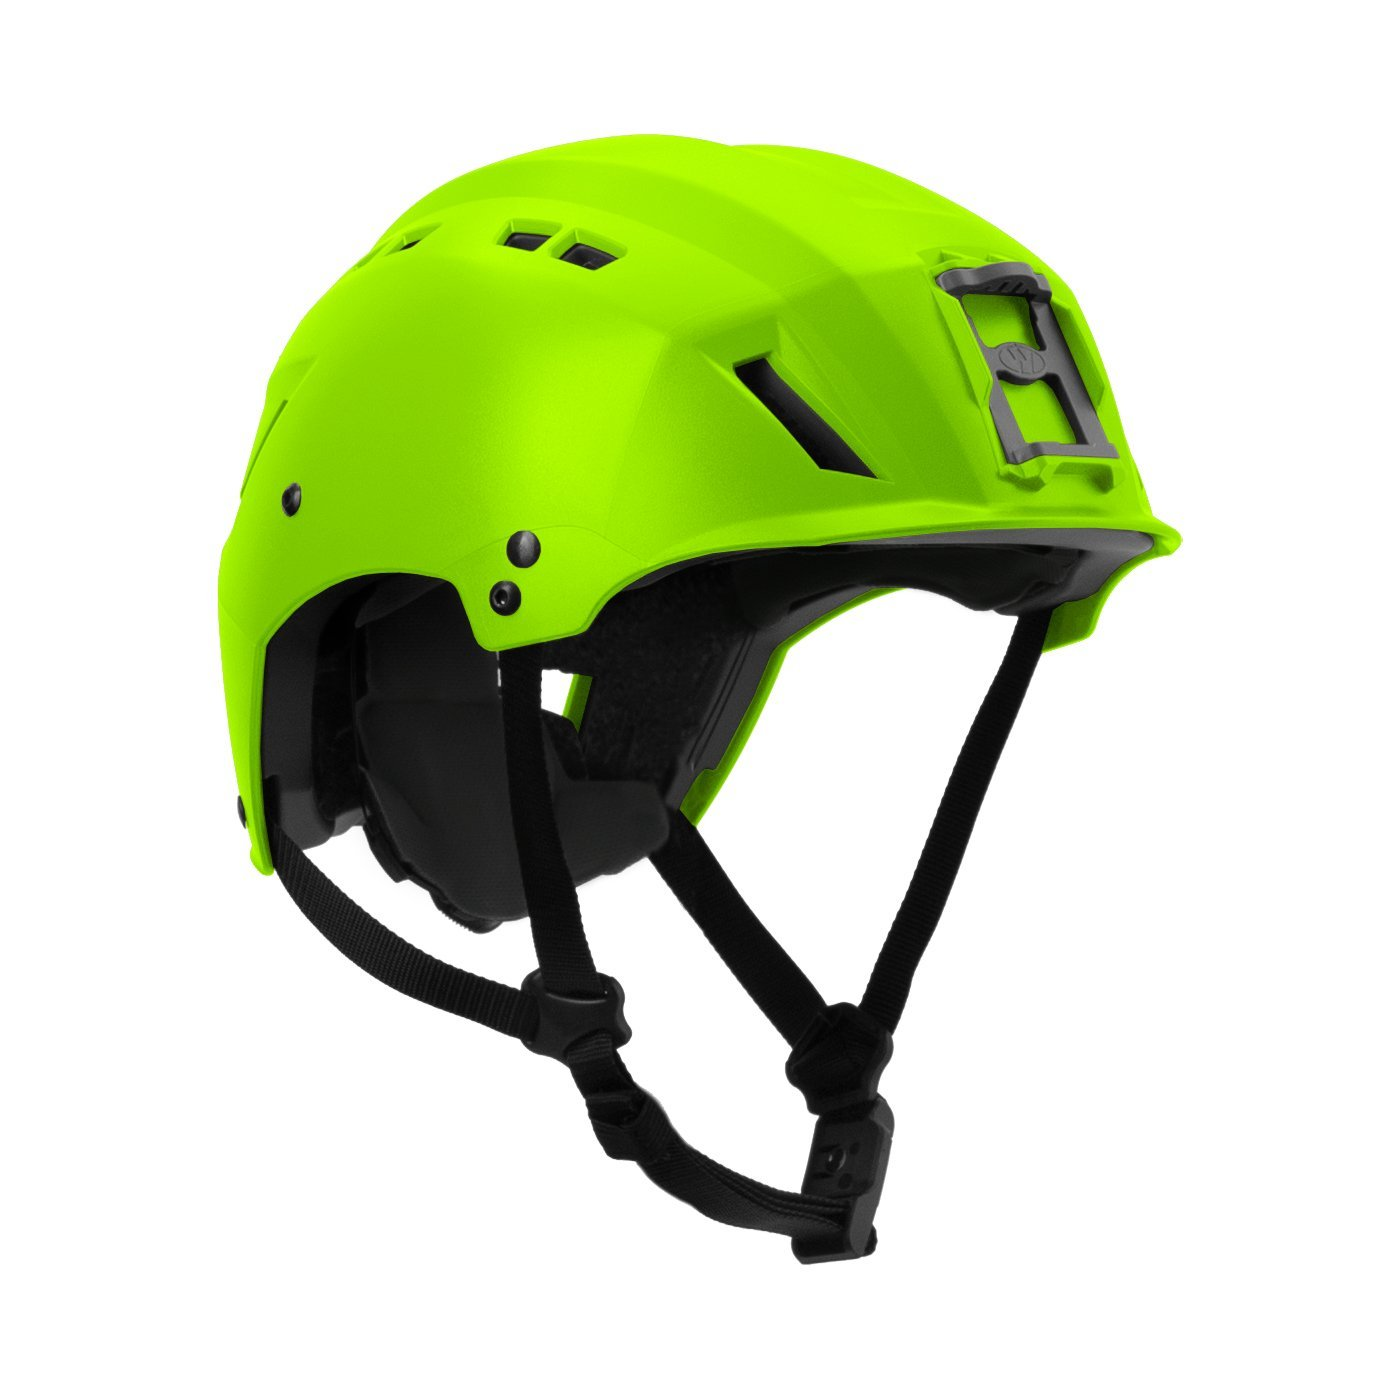 Team Wendy Helm EXFIL® SAR Backcountry HI-VIZ Grün